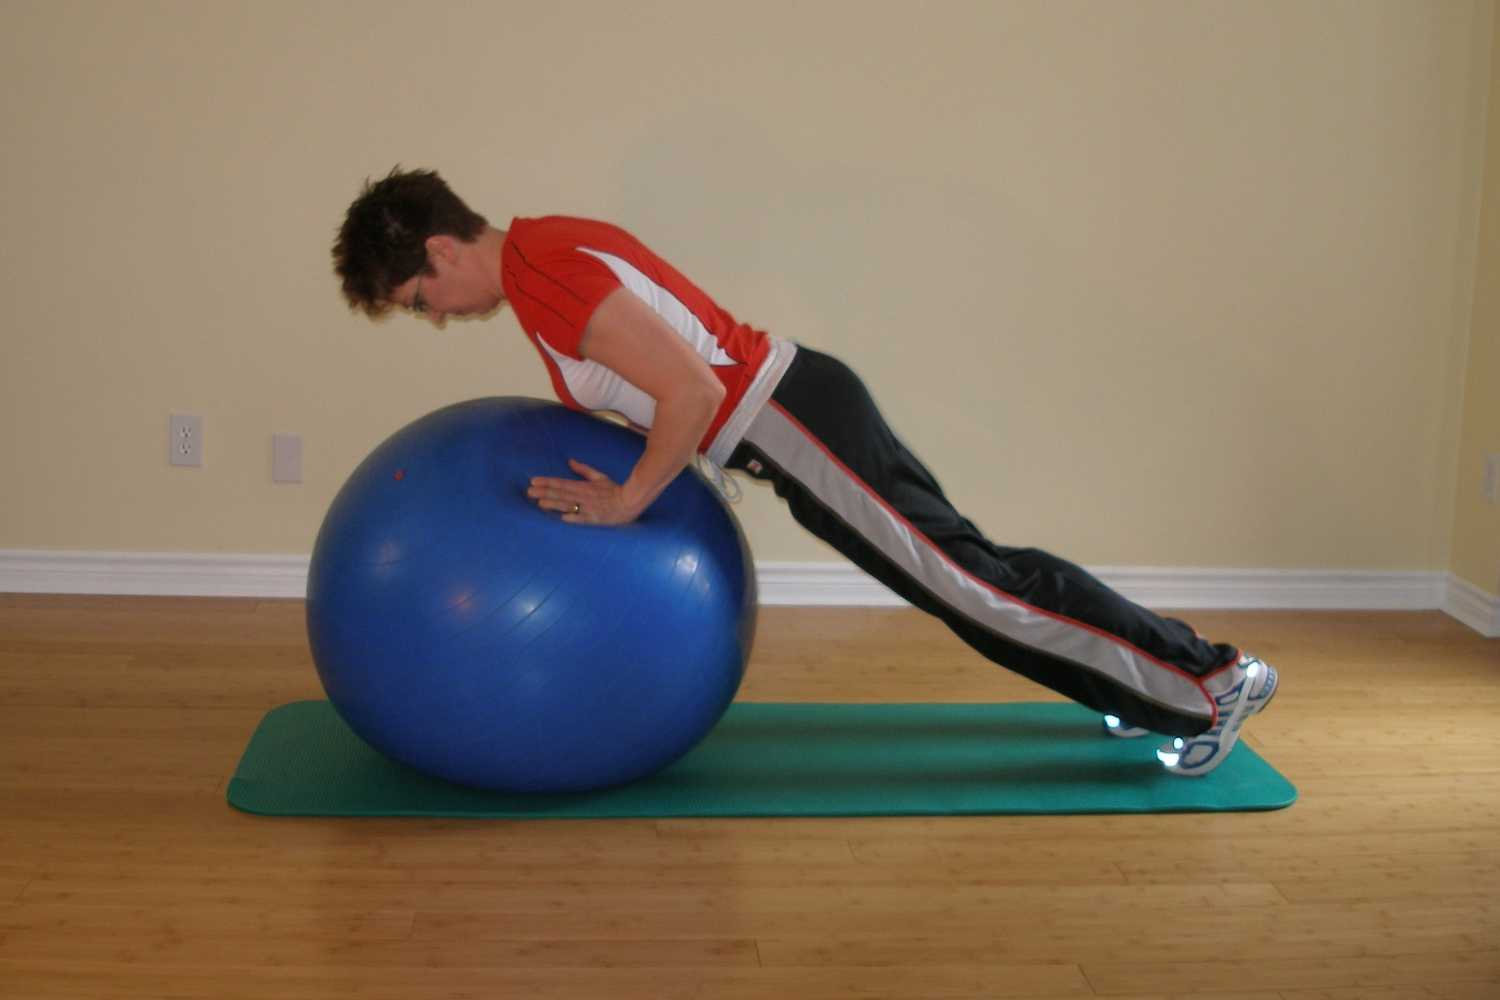 pushups on exercise ball midpoint